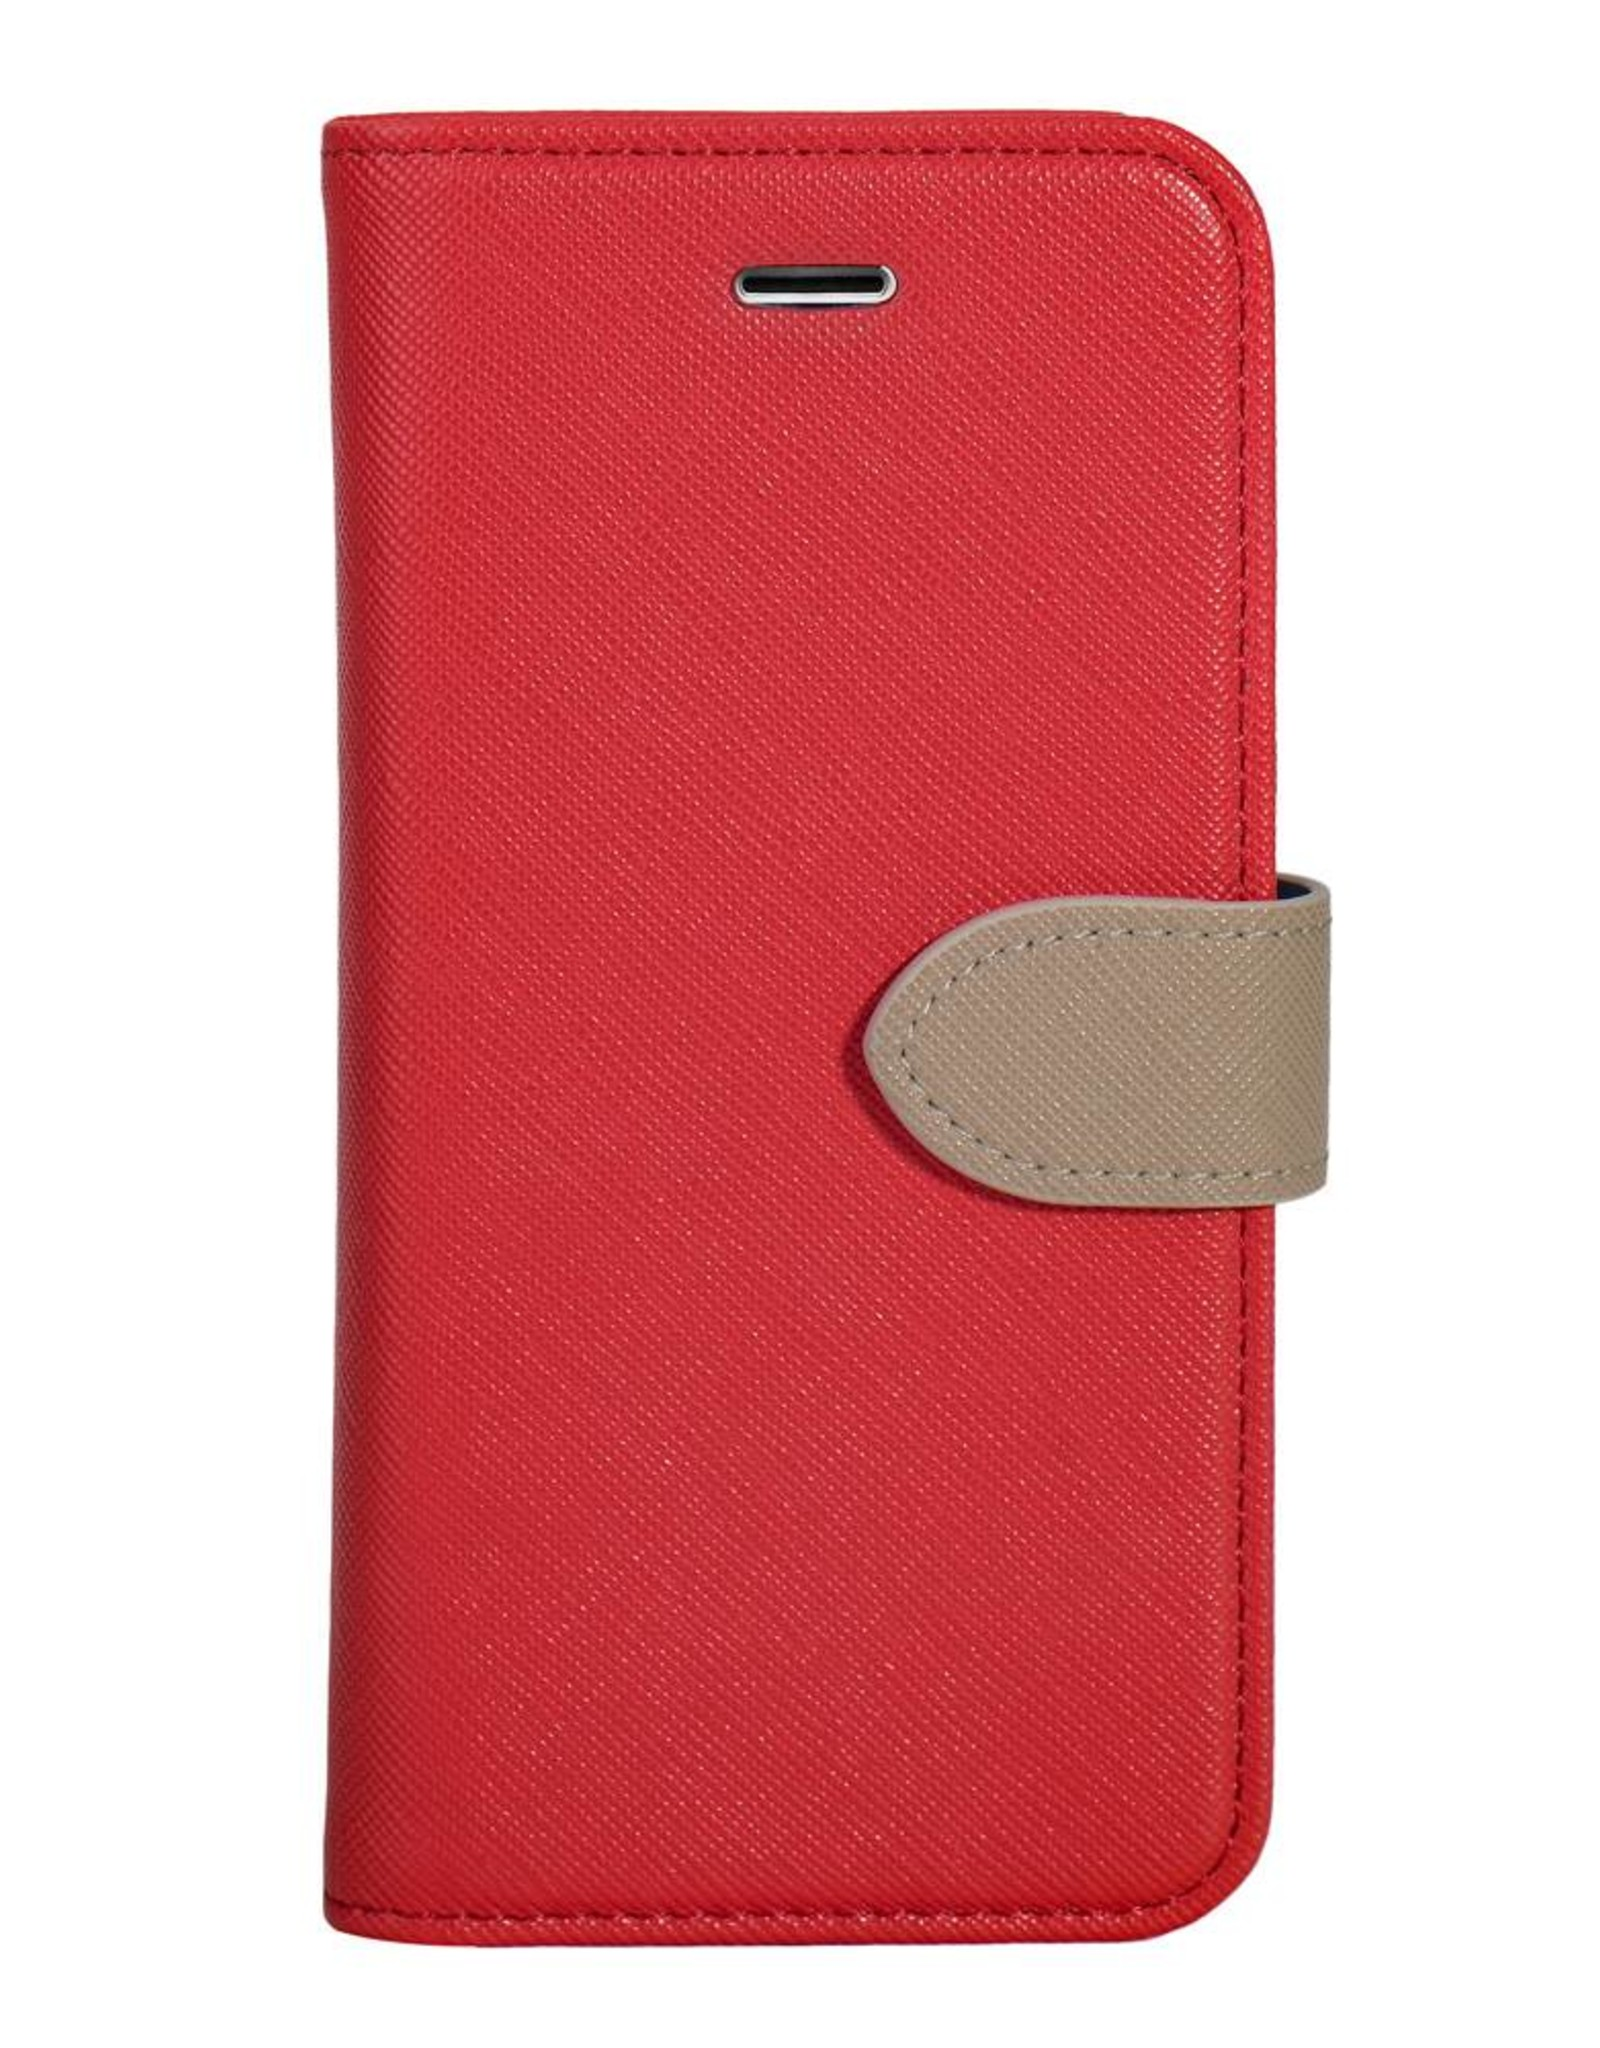 Blu Element Blu Element | iPhone Xs Max 2 in 1 Folio Case Red/Butterum | 120-0825